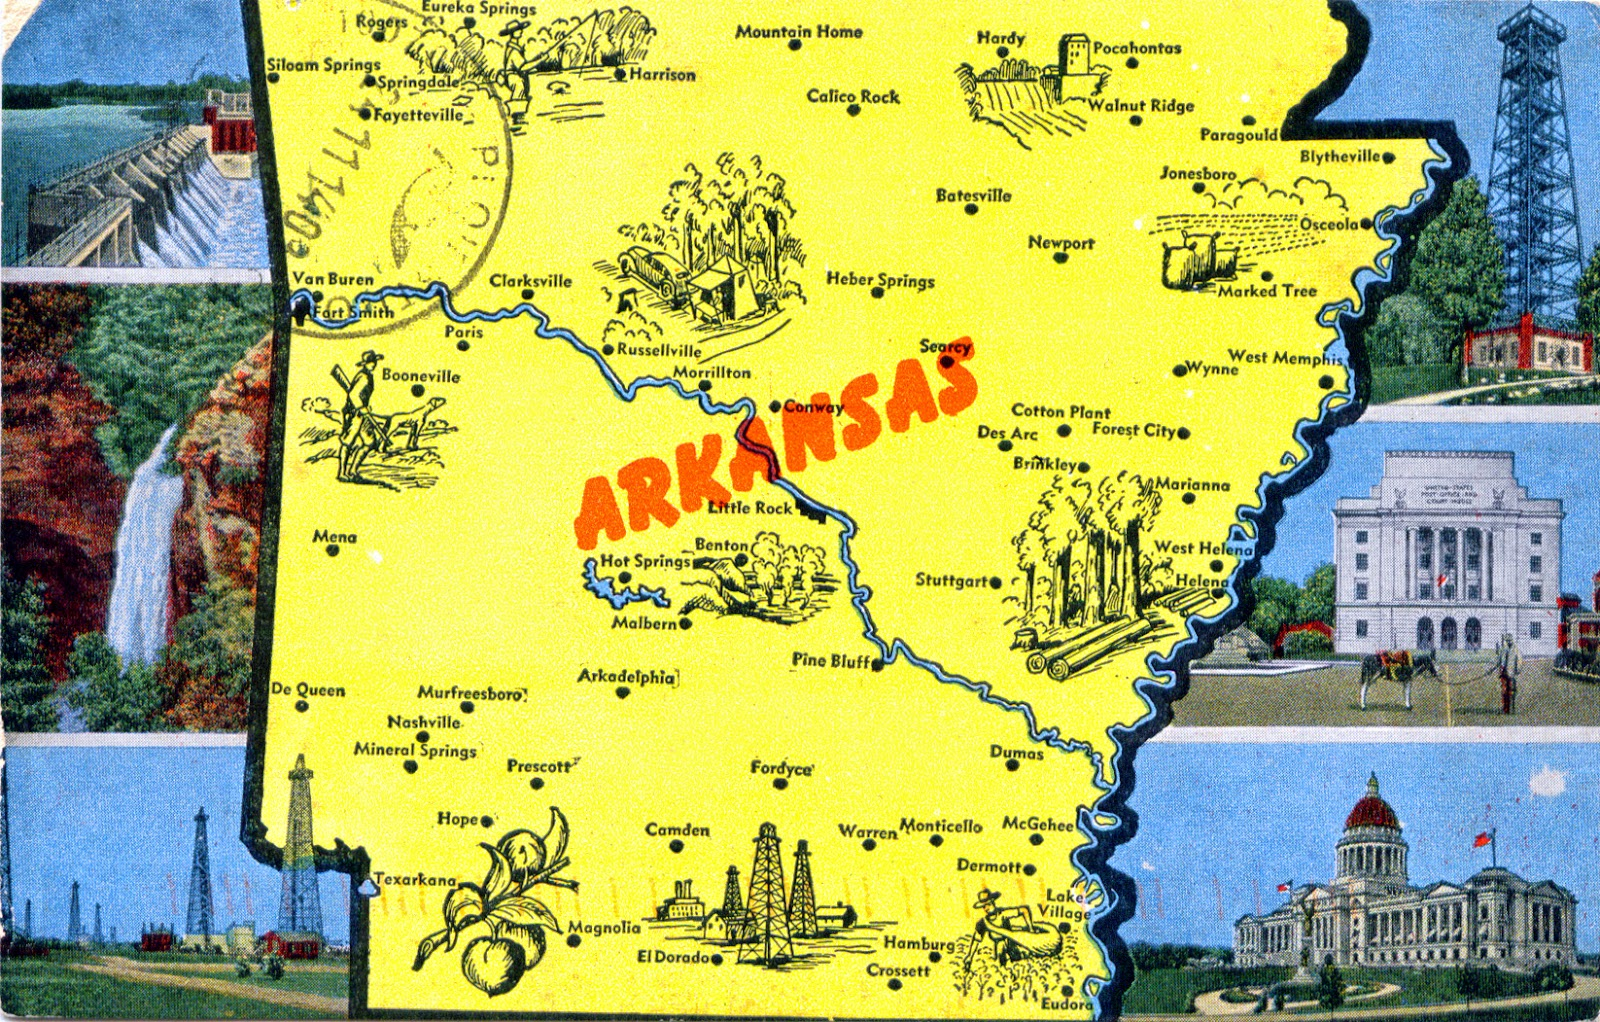 WORLD COME TO MY HOME 1388 1403 1421 UNITED STATES Arkansas